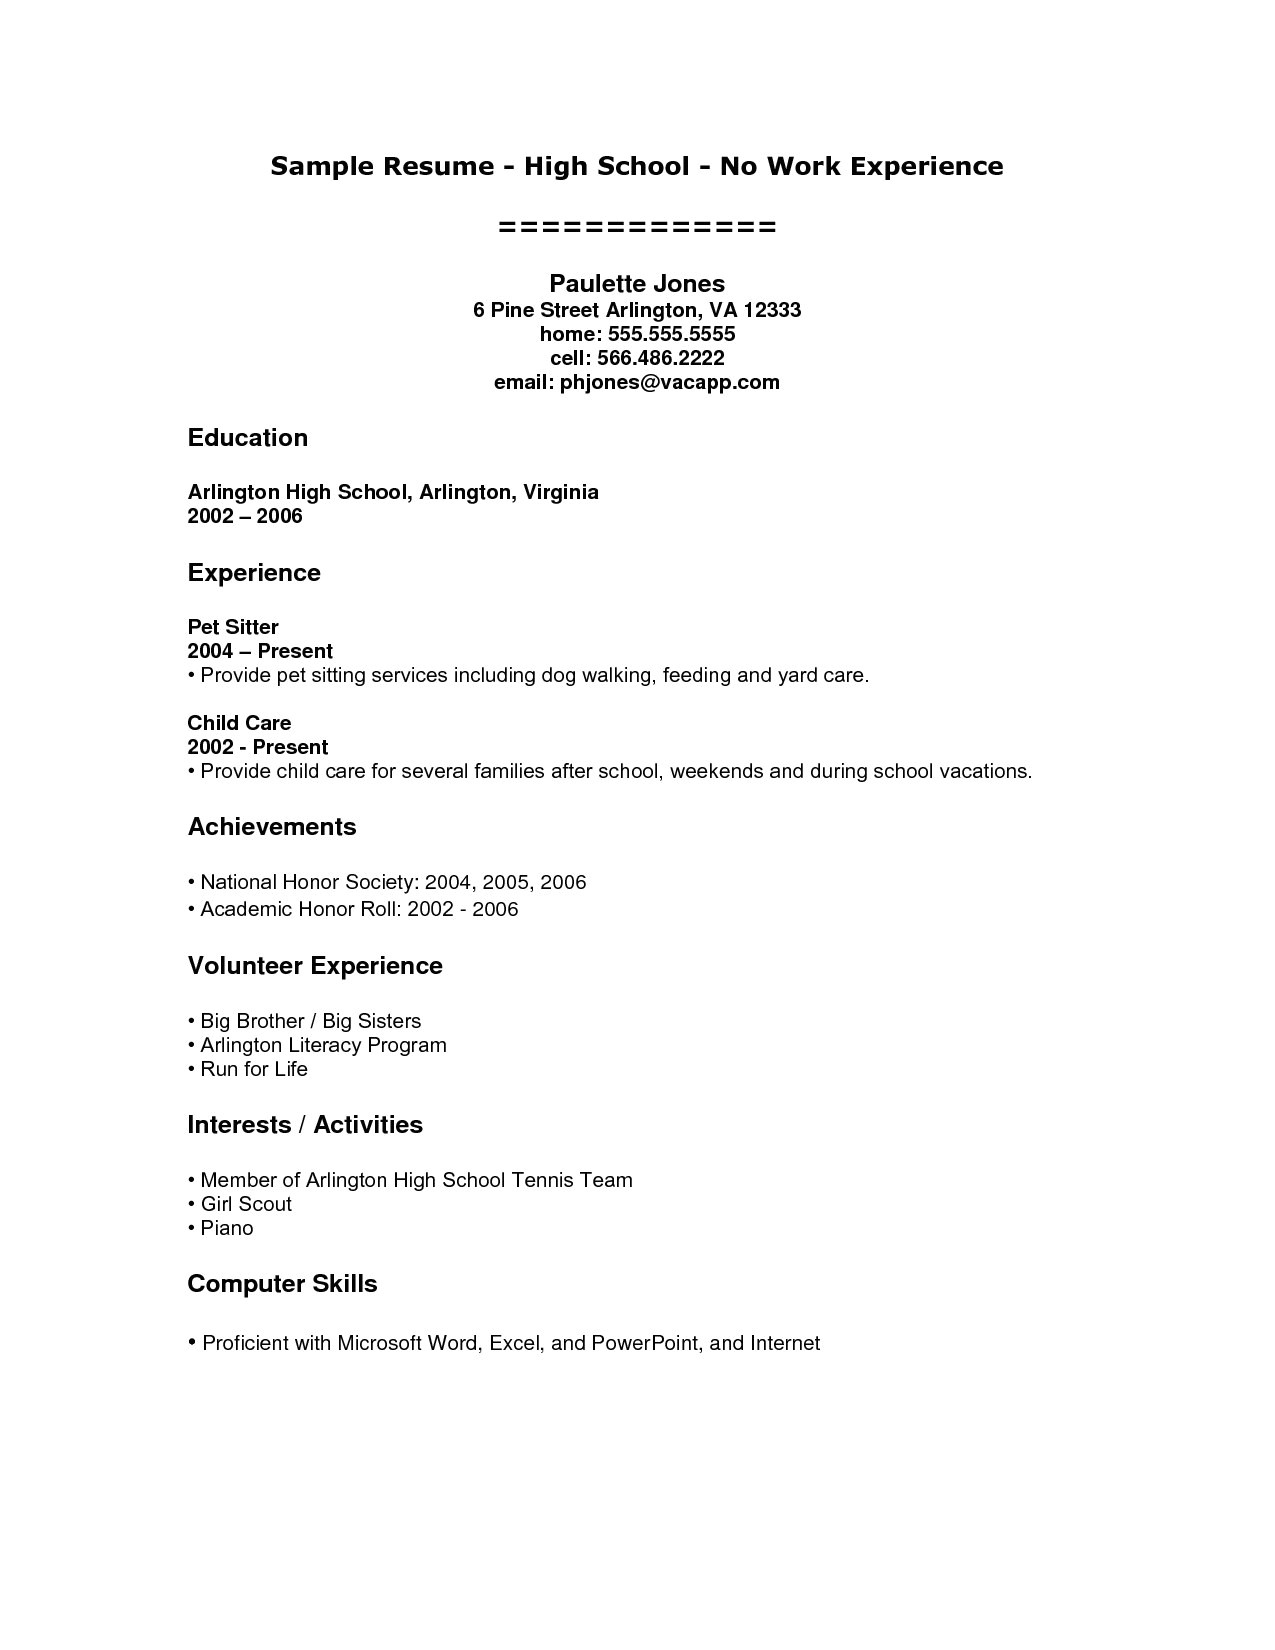 Sample Of Resume for Working Student High School Student Resume Examples No Work Experience